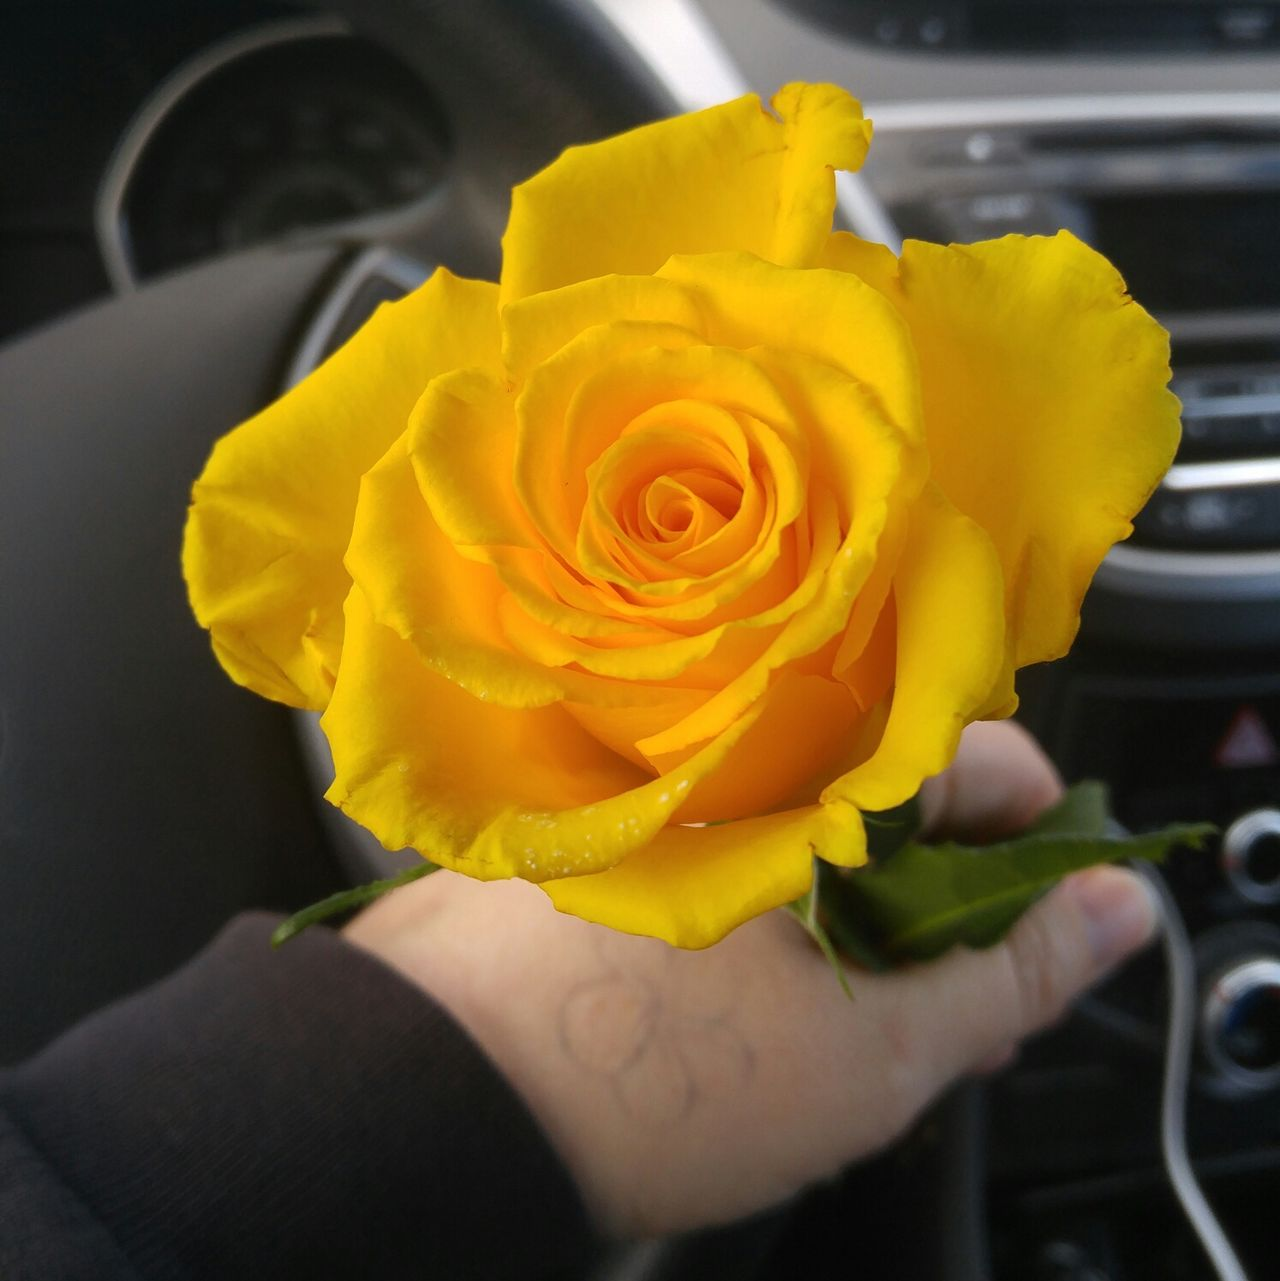 Adapted To The City Random Rose - Flower Yellow Flower Yellow Yellow Rose Gift In Car